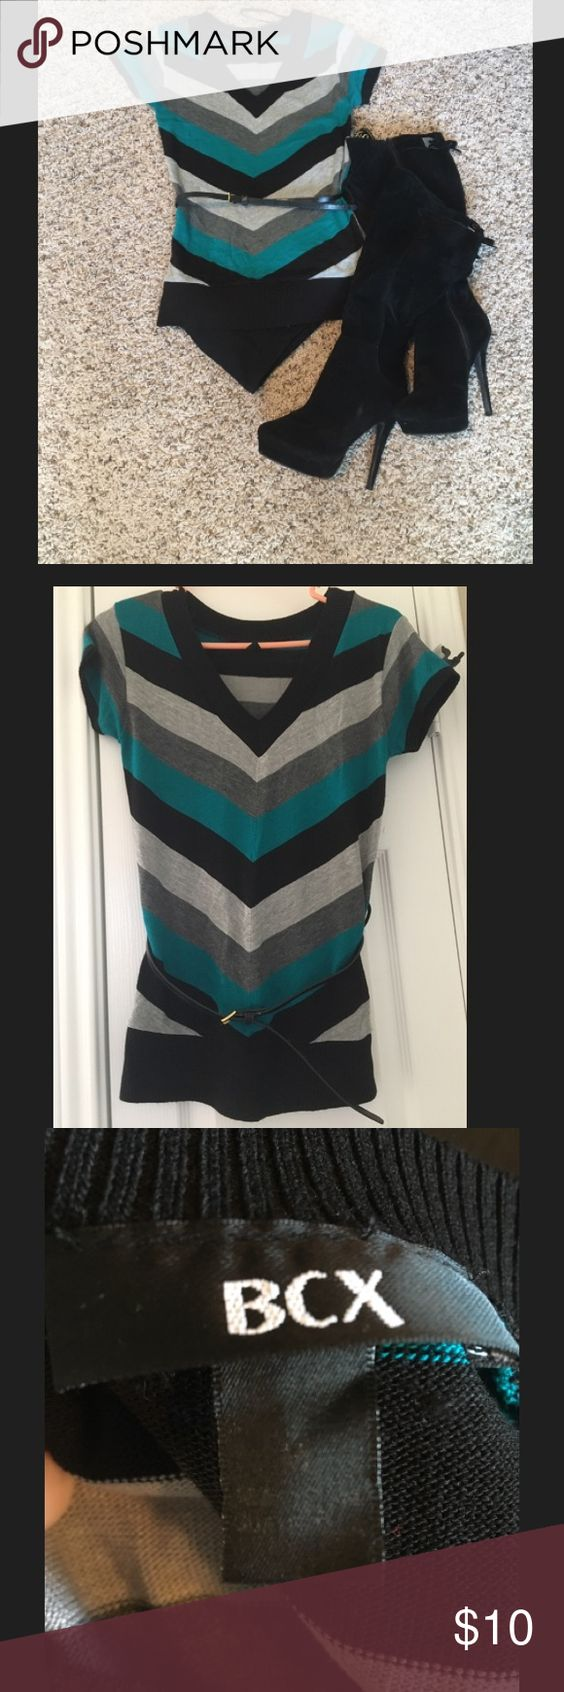 Short sleeve sweater Gently worn. Belt is not original to sweater. Teal, grey & black striped. Size M BCX Tops